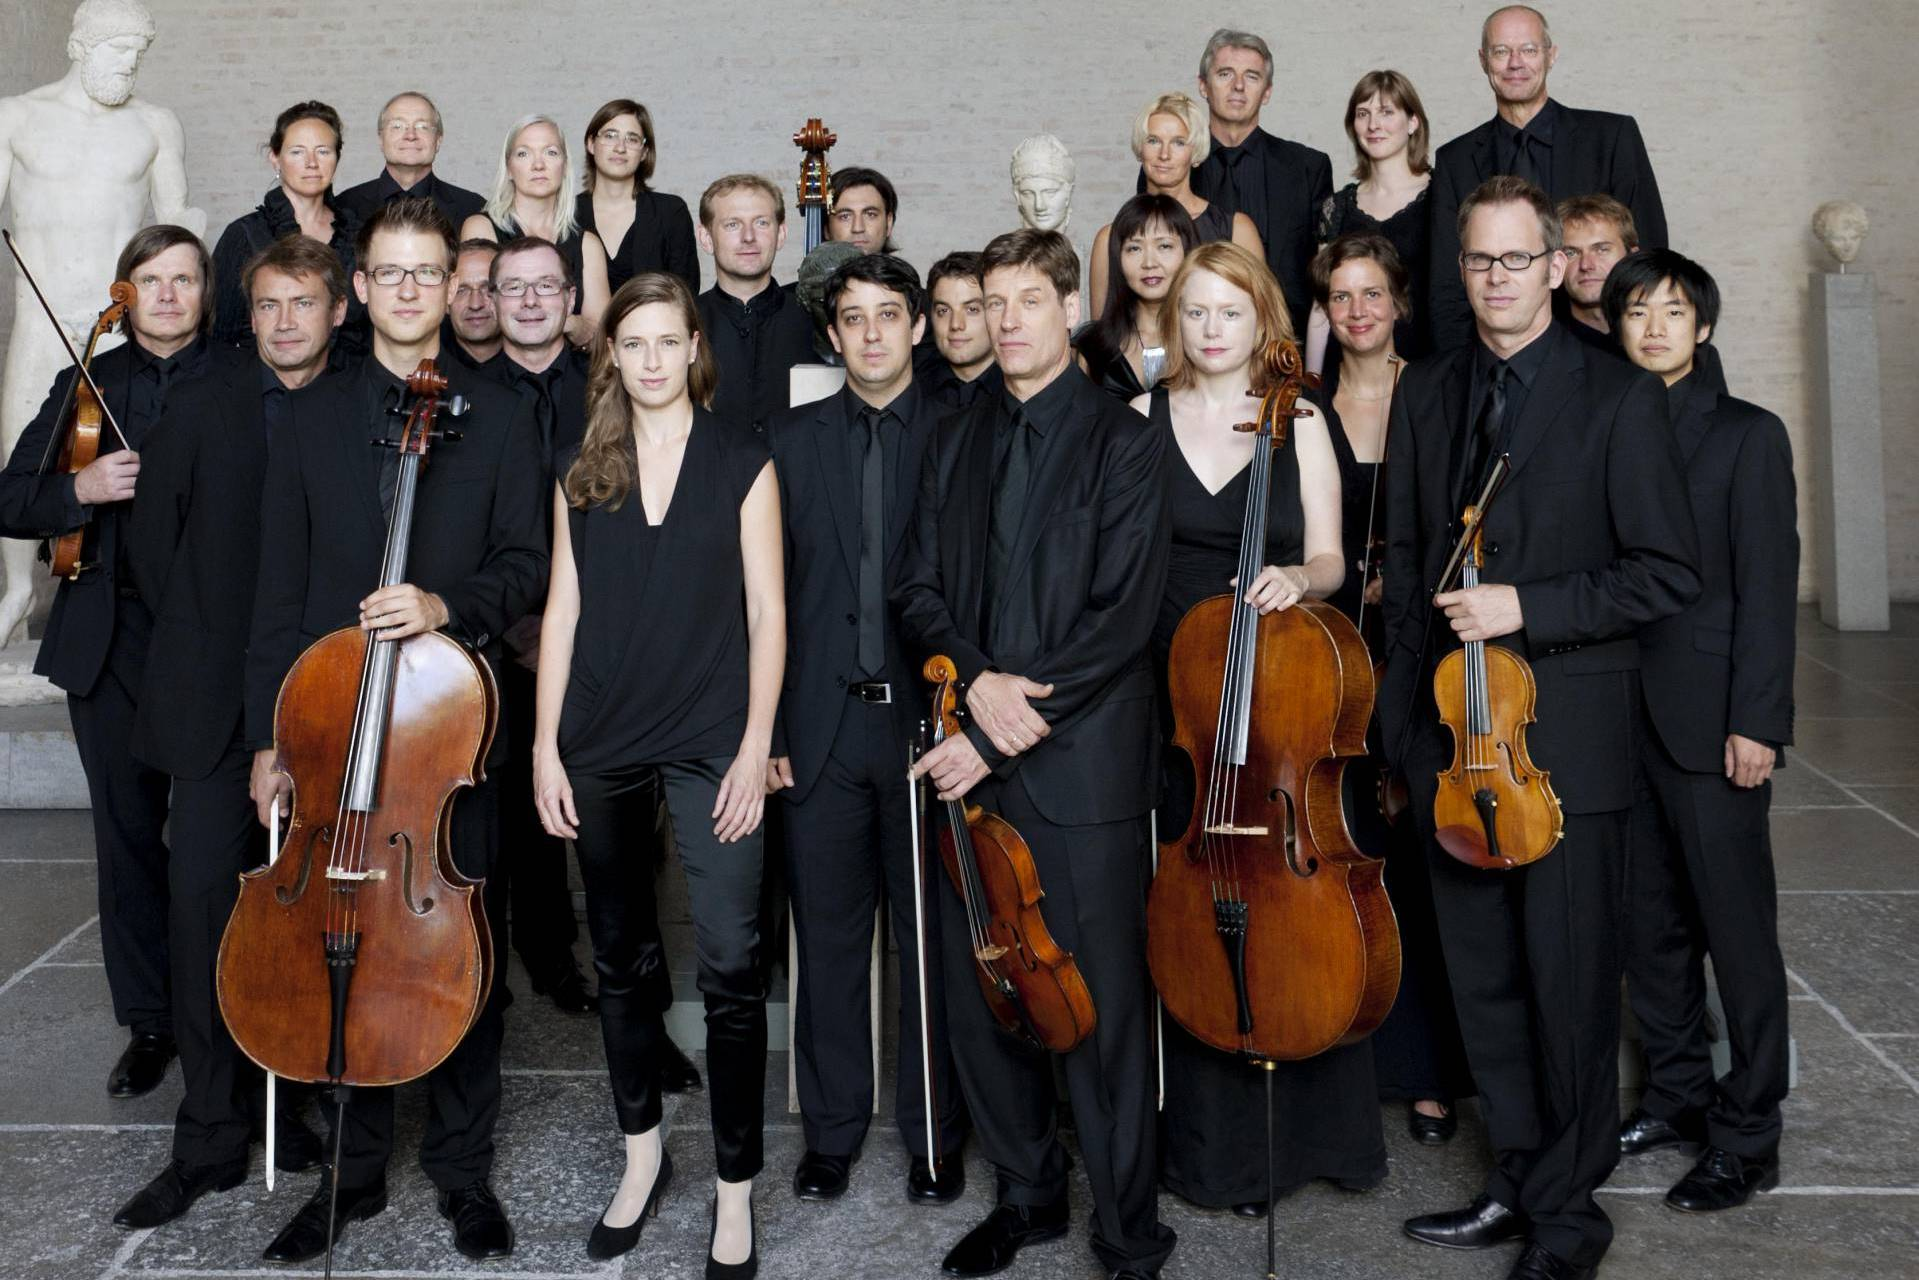 Munich chamber orchestra hakan hardenberger fas arts for Chambre orchestra